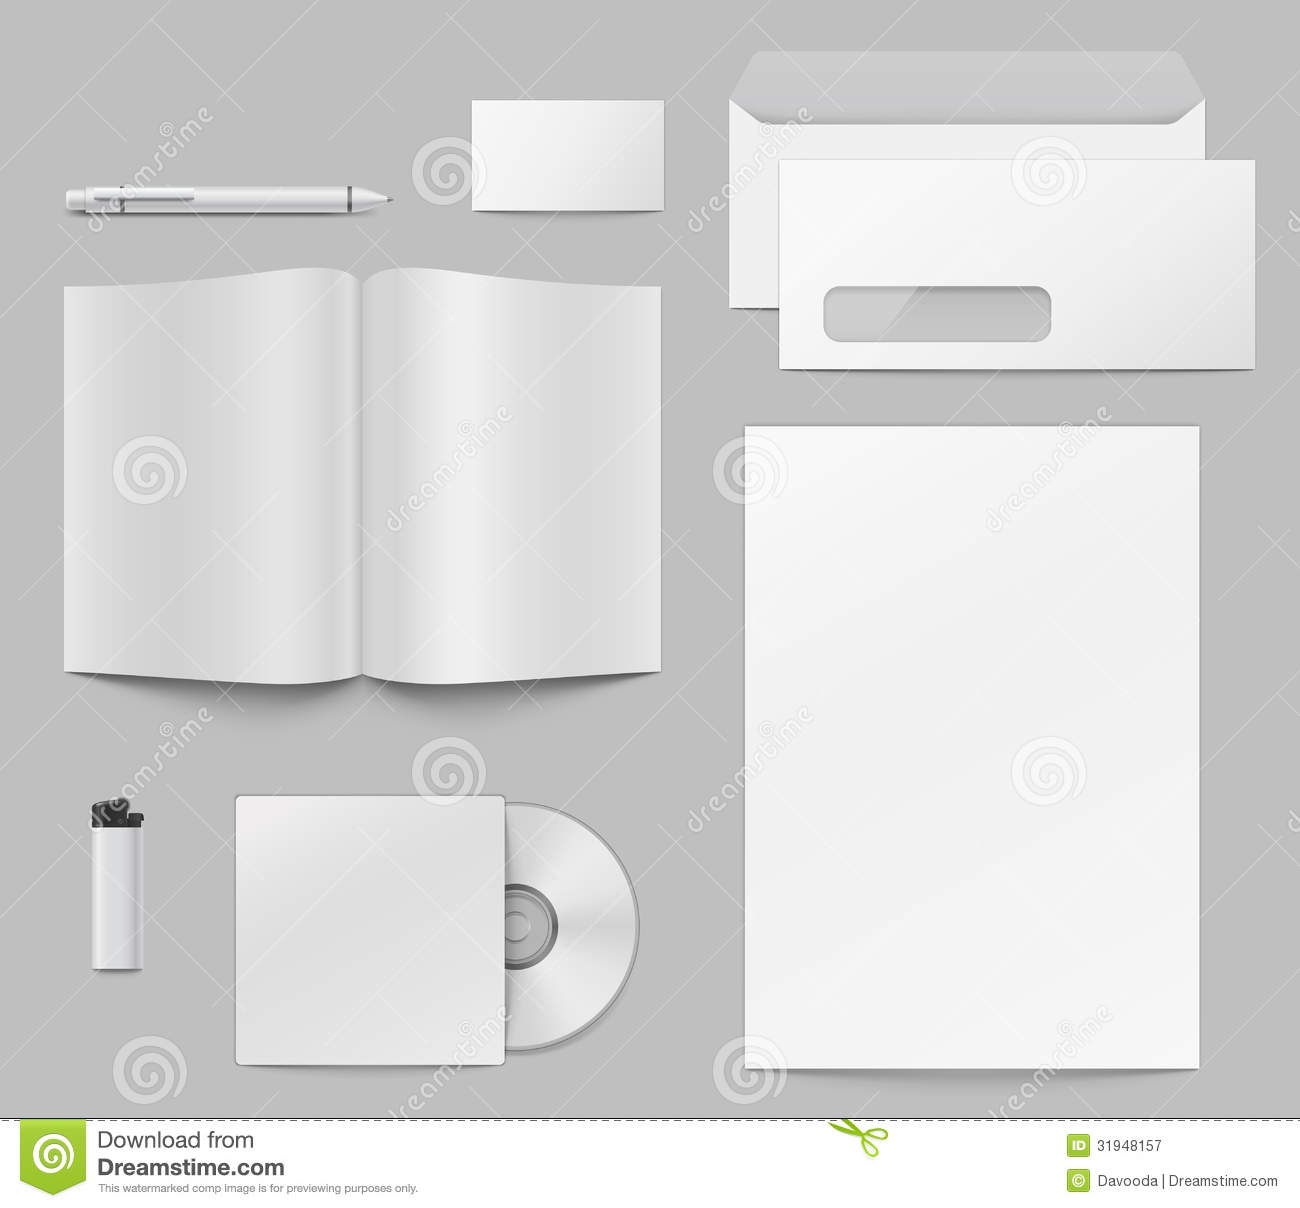 Templates Of Corporate Identity Elements. Stock Vector ...